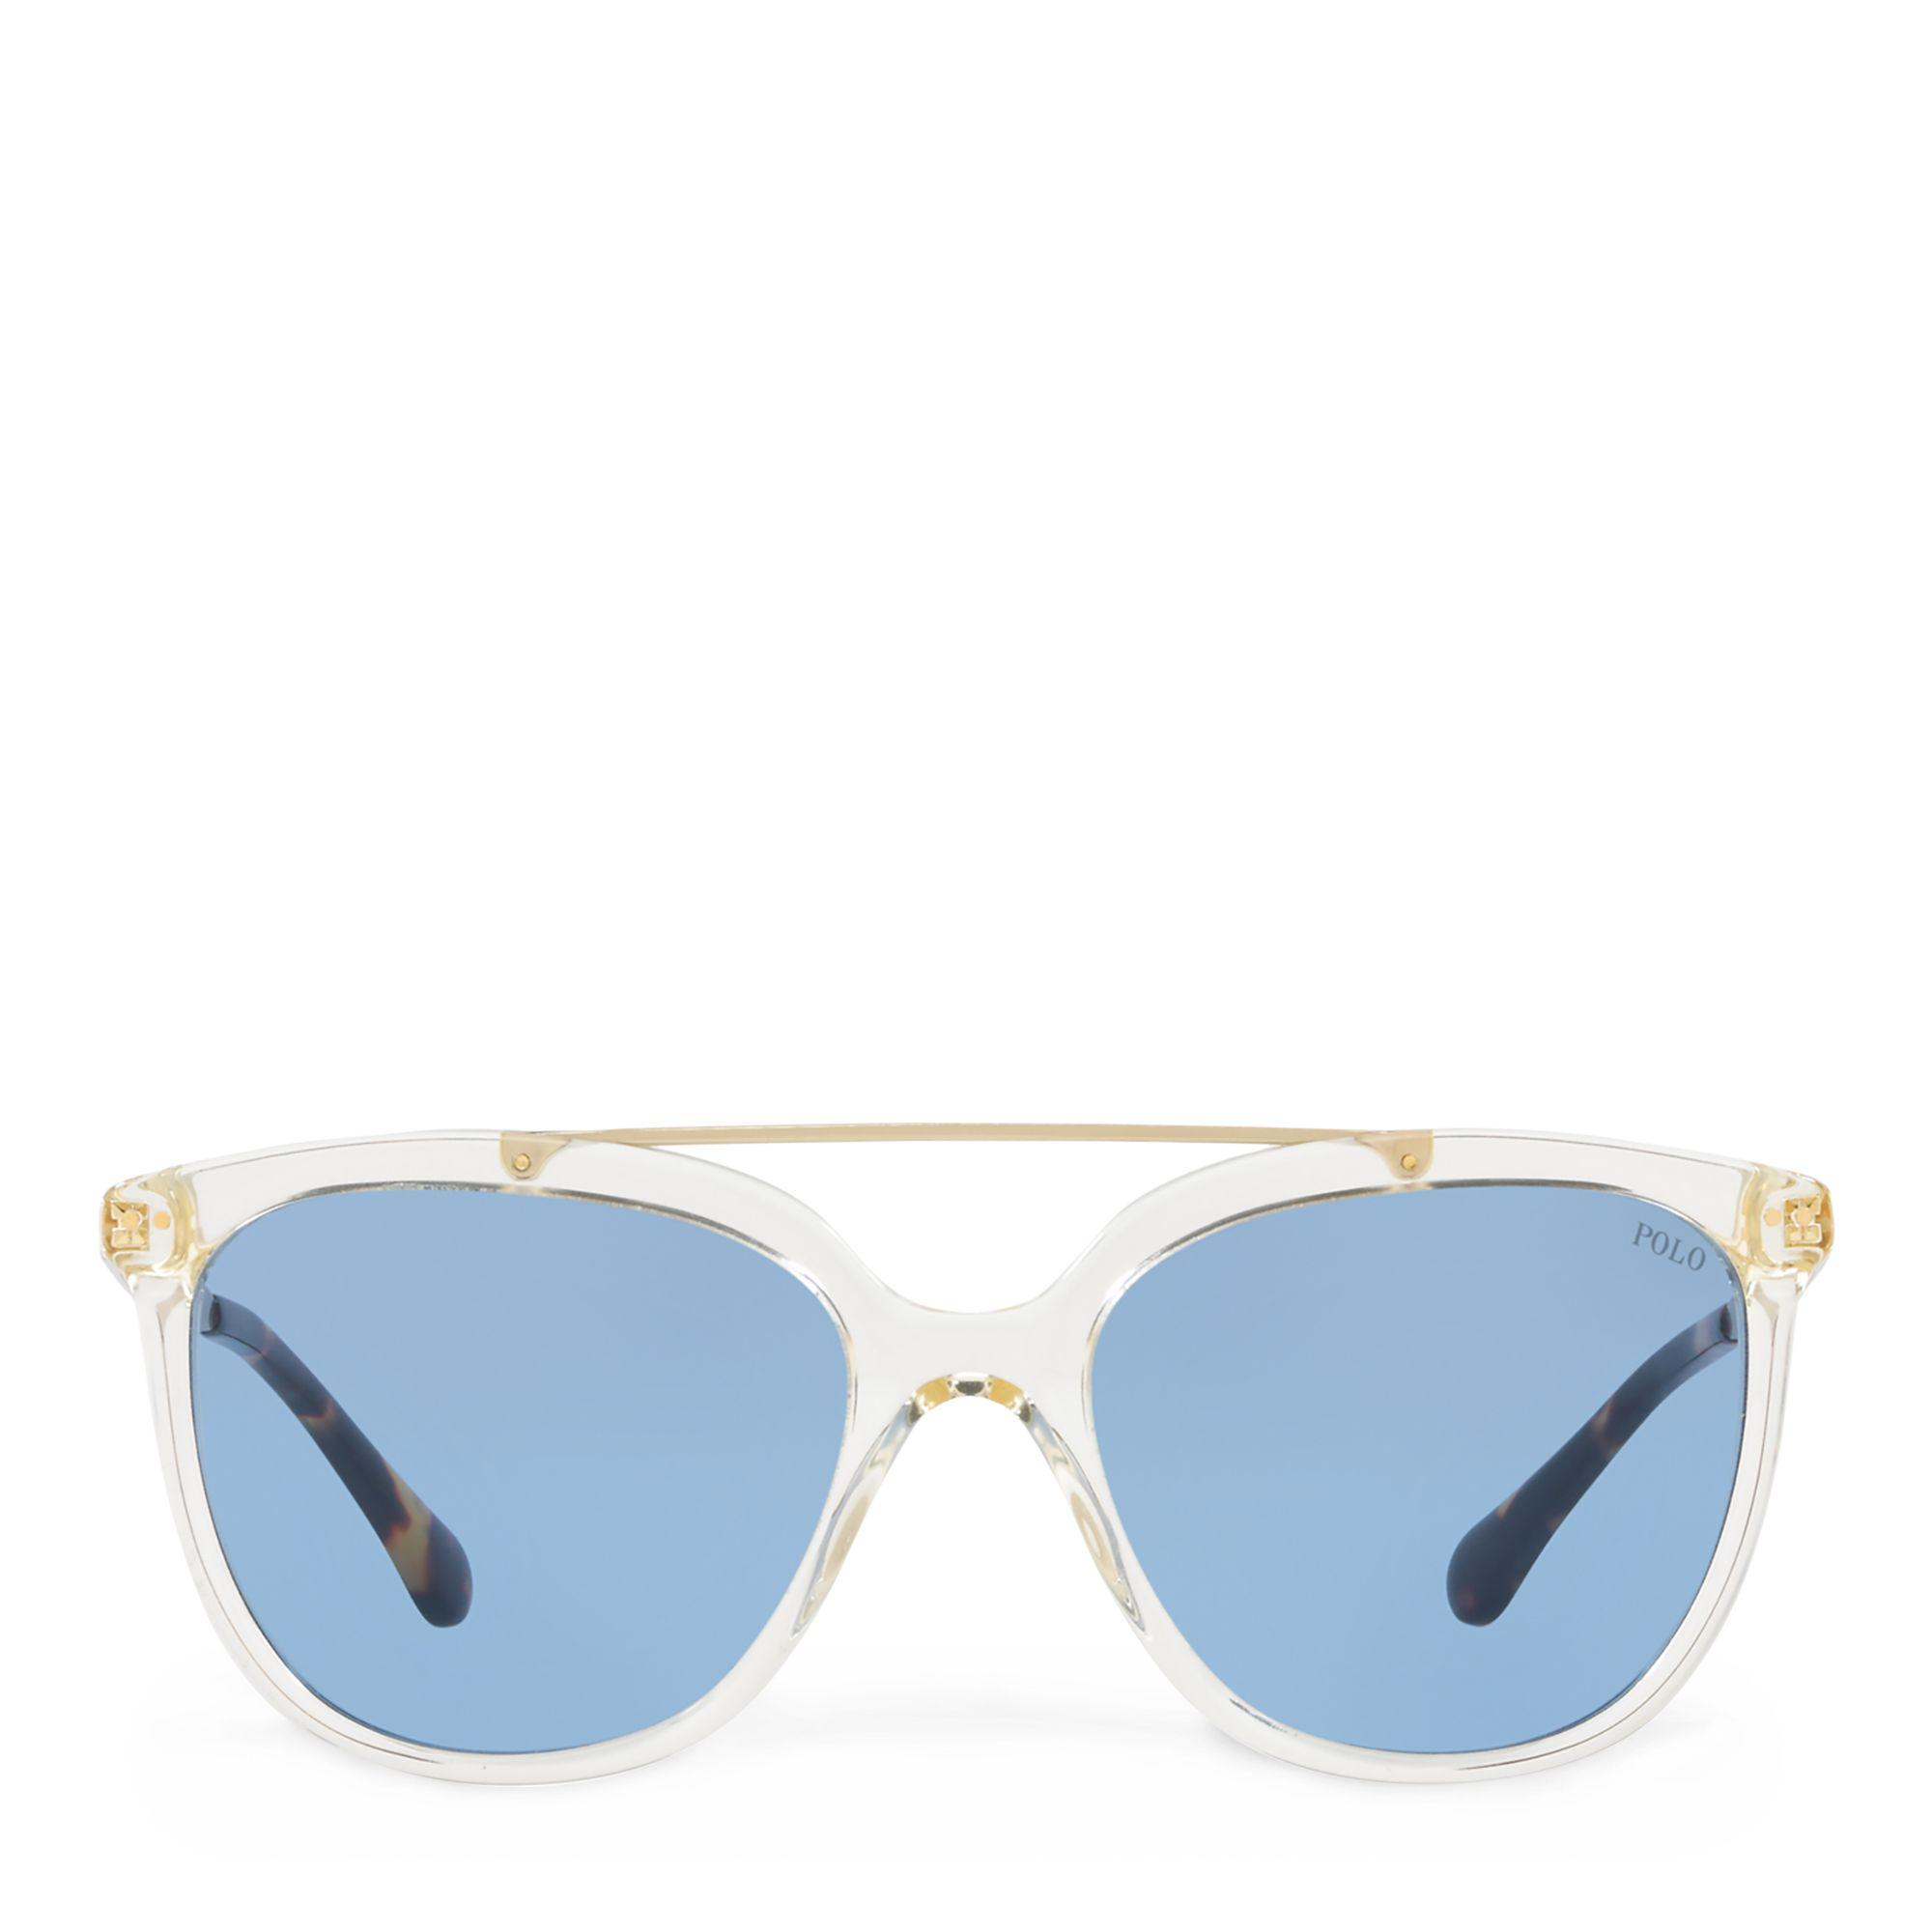 37557bcc885 Polo Ralph Lauren Metal-frame Square Sunglasses in Blue - Lyst